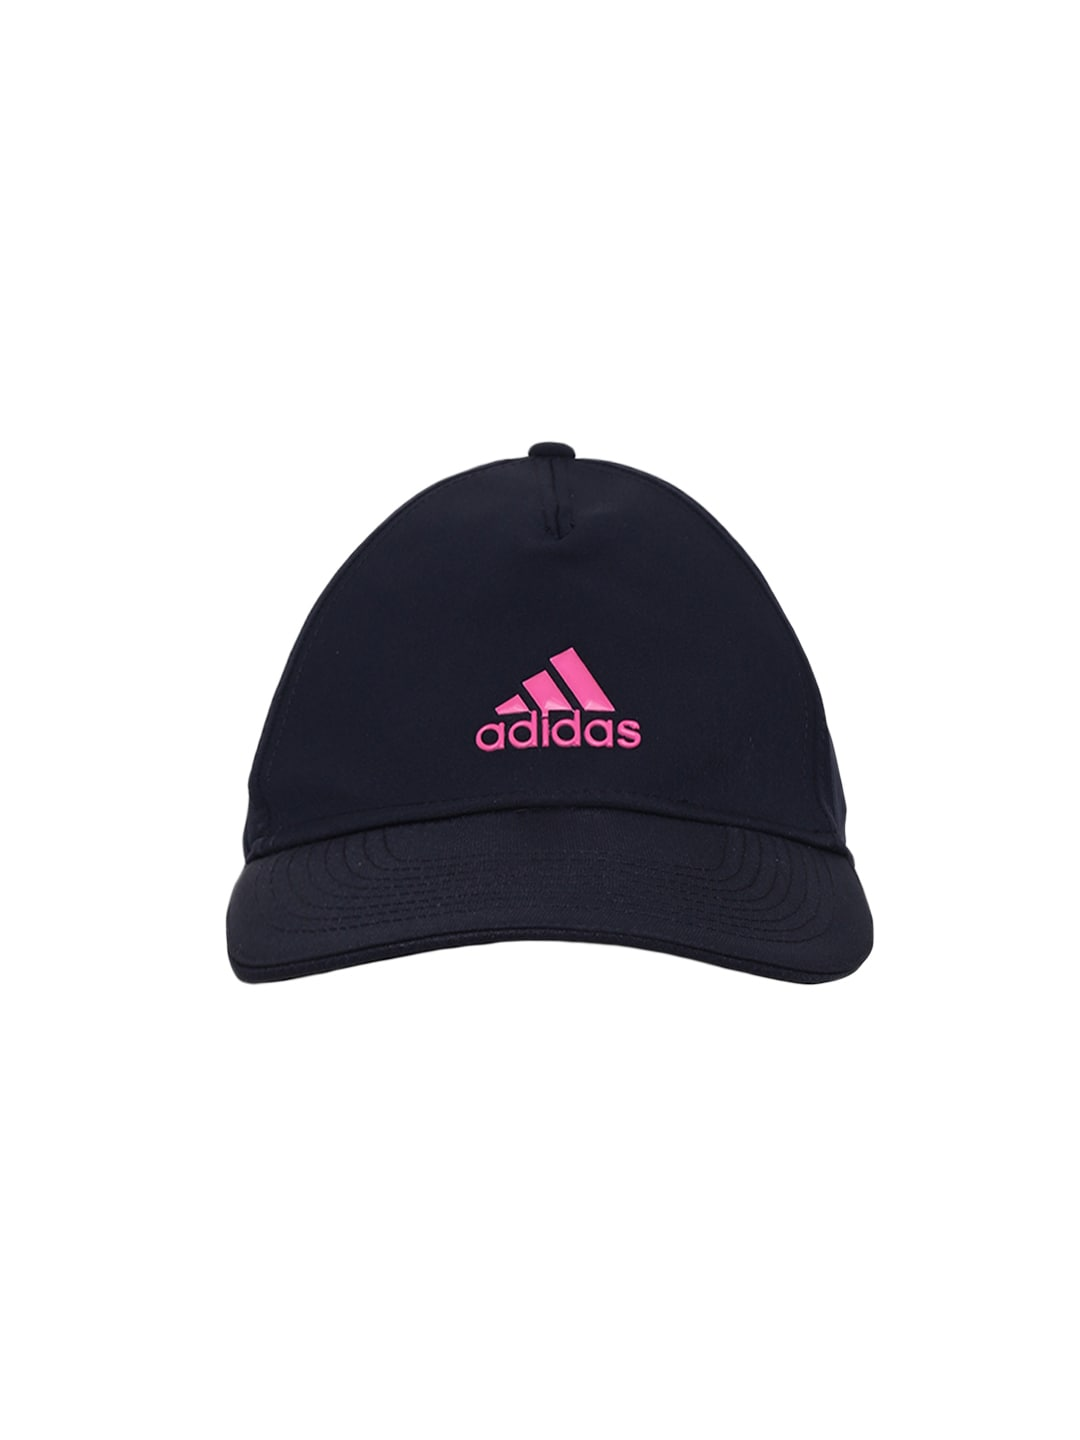 Adidas W Caps - Buy Adidas W Caps online in India 8640a62d6961